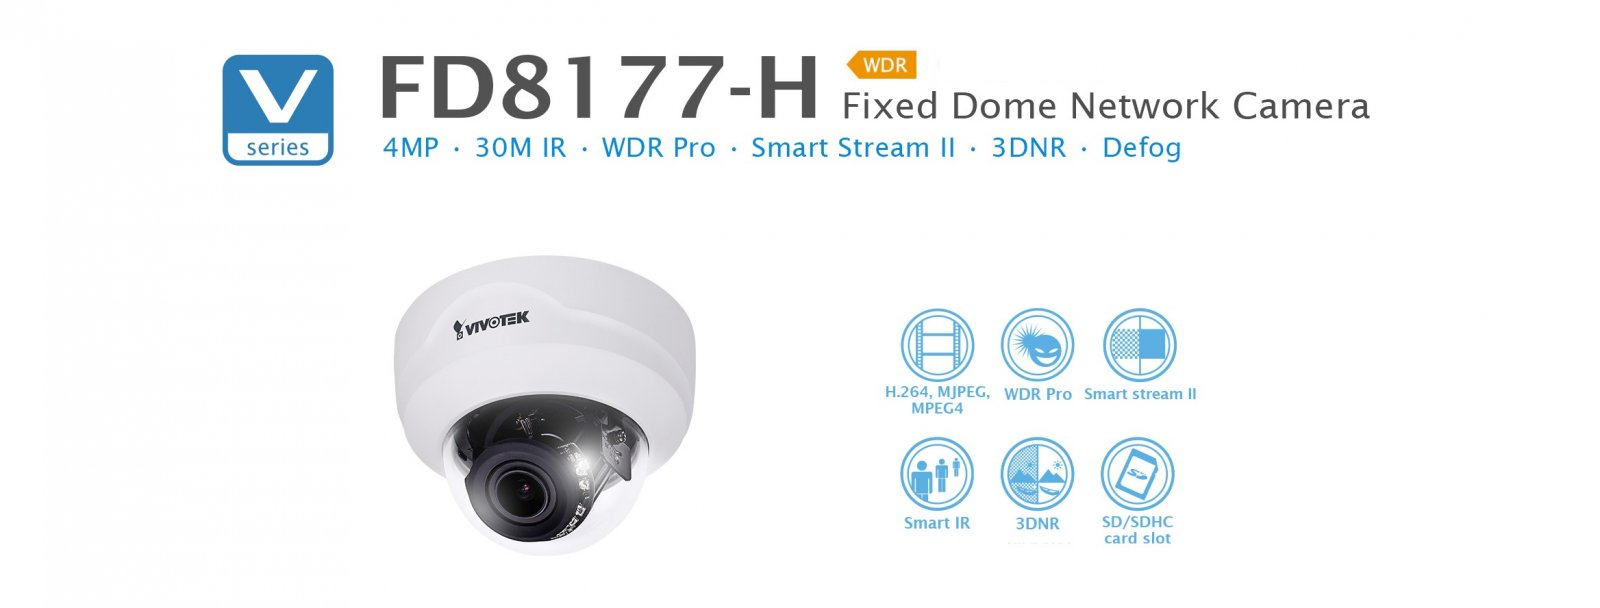 FD8177-H. Vivotek Fixed Dome Network Camera